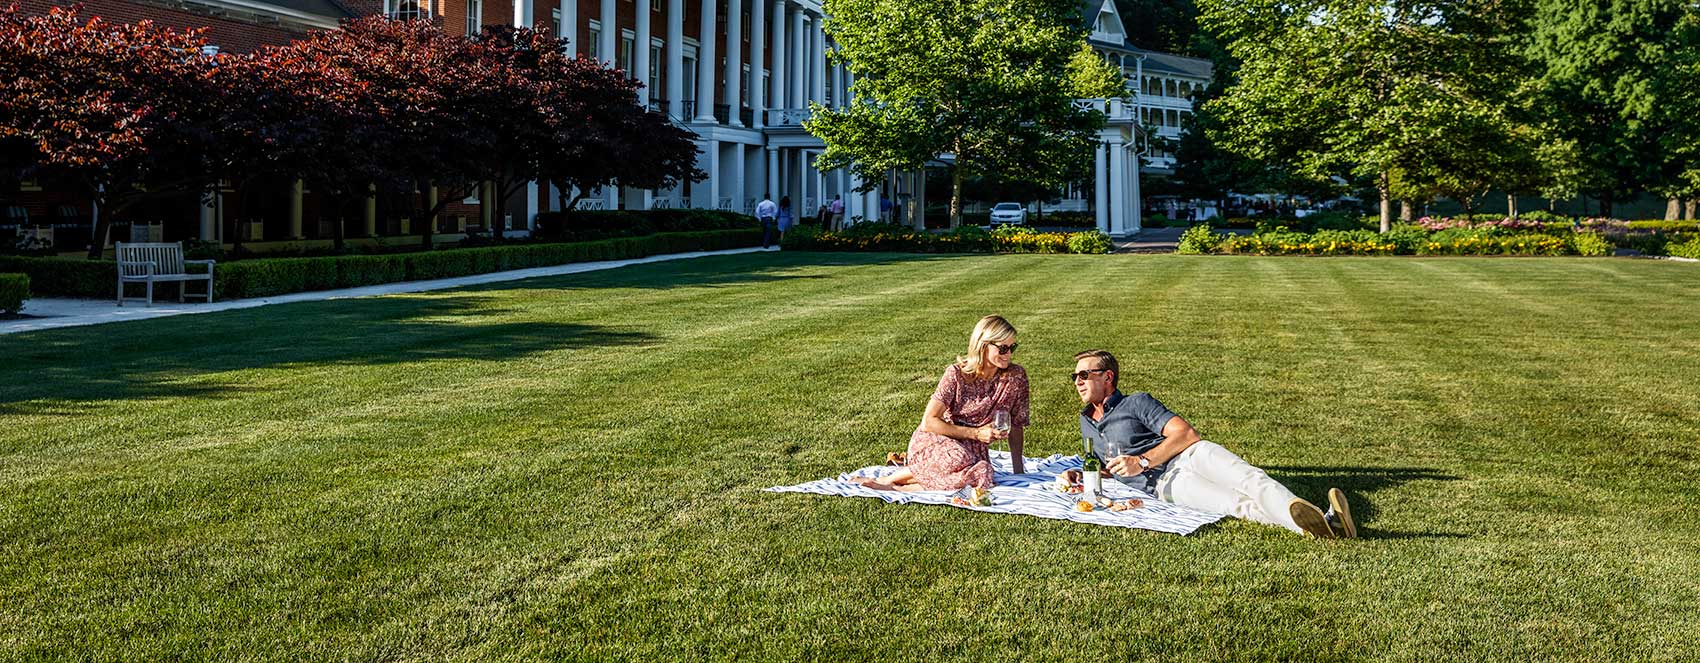 Couple picnicking on Bedford lawn